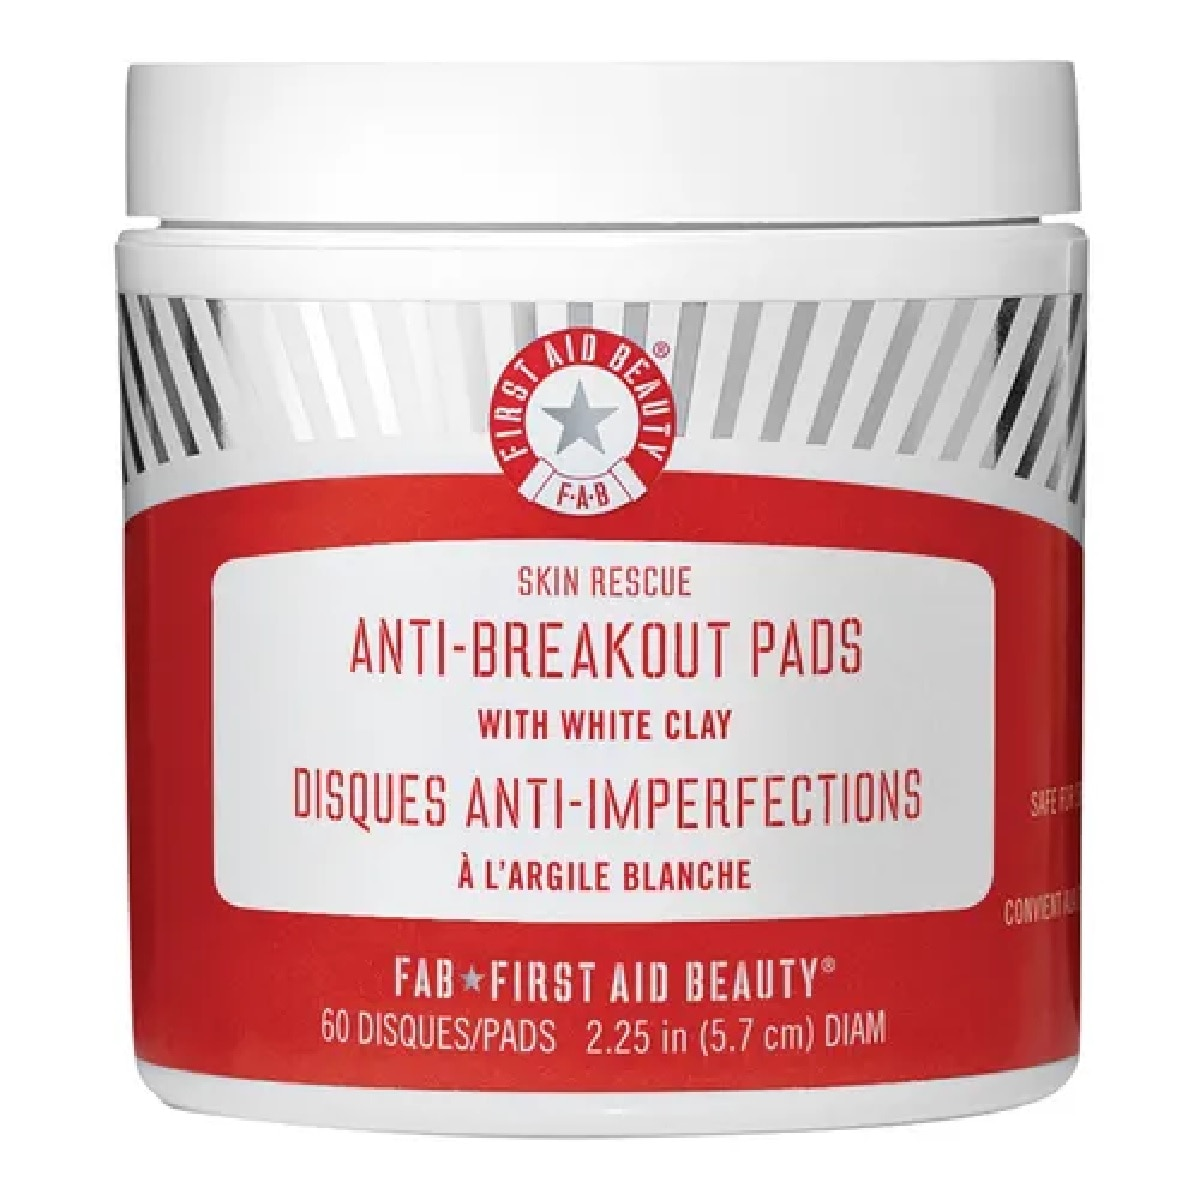 SKIN RESCUE ANTI-BREAKOUT PADS WITH WHITE CLAY